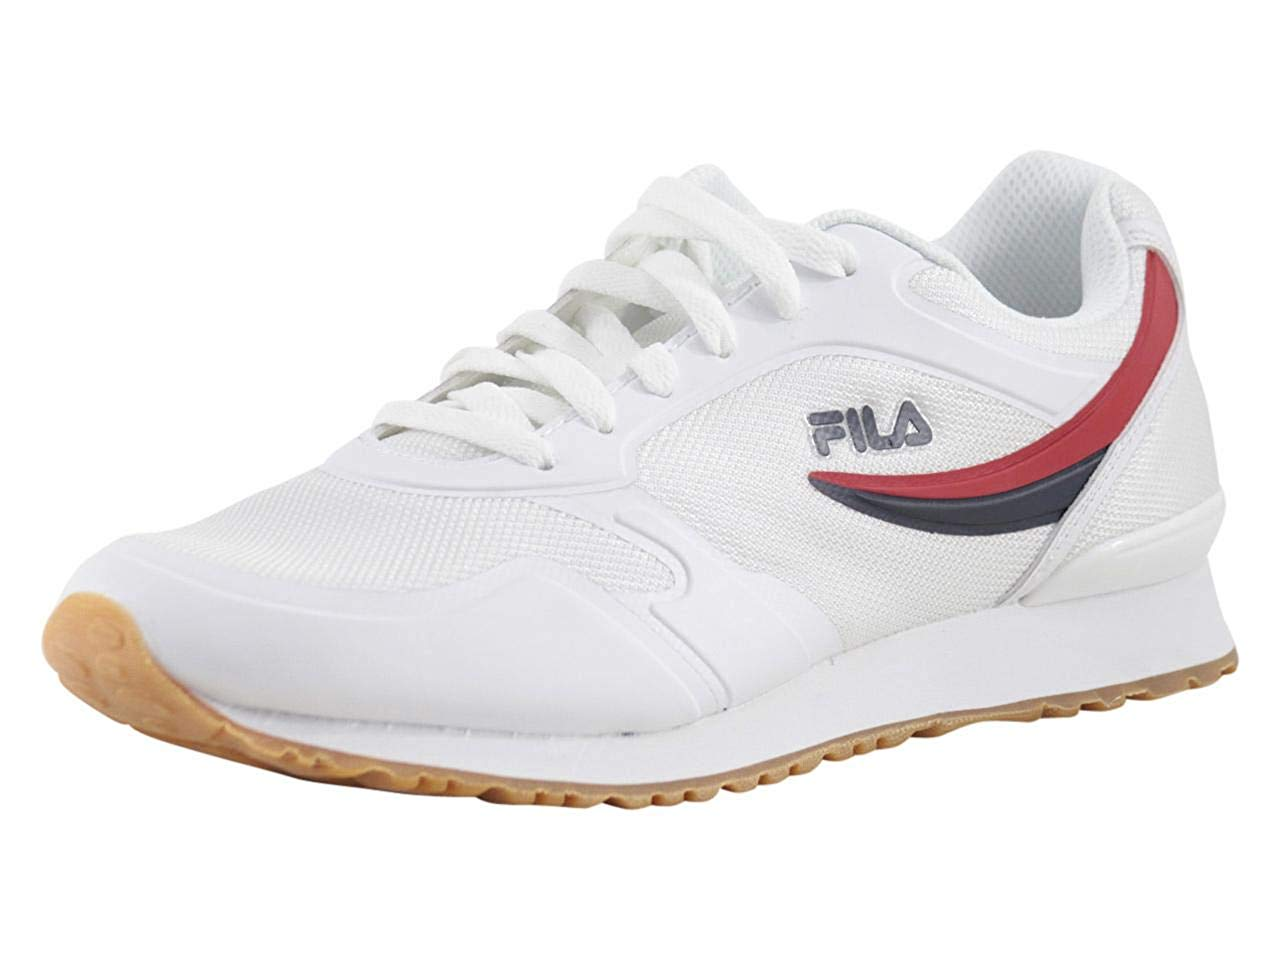 8e7d32c620c0 Details about Fila Men s Forerunner-18 White Navy Red Sneakers Shoes